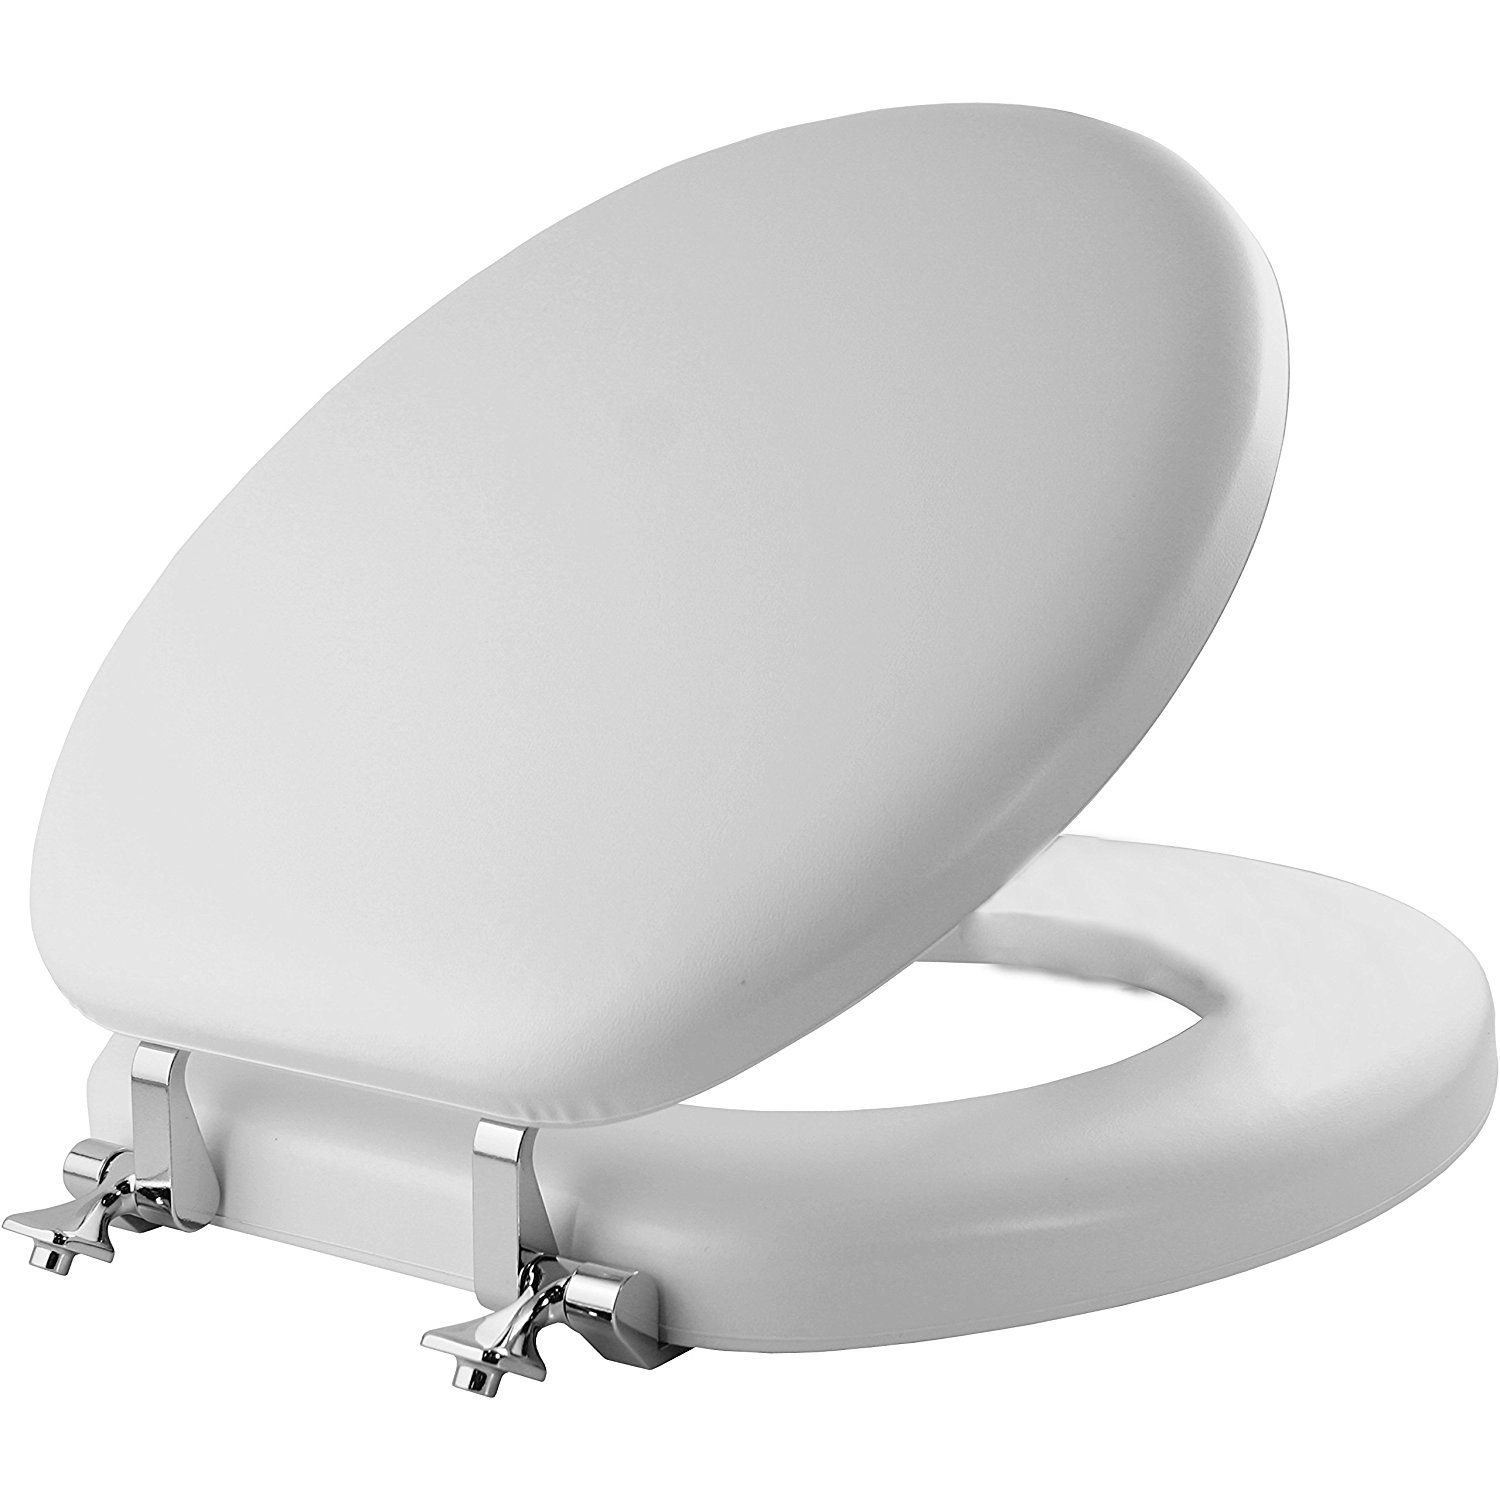 Mayfair Soft Toilet Seat with Molded Wood Core and Classic Chrome Metal Hinges, Round, White, 13CP 000 by Mayfair